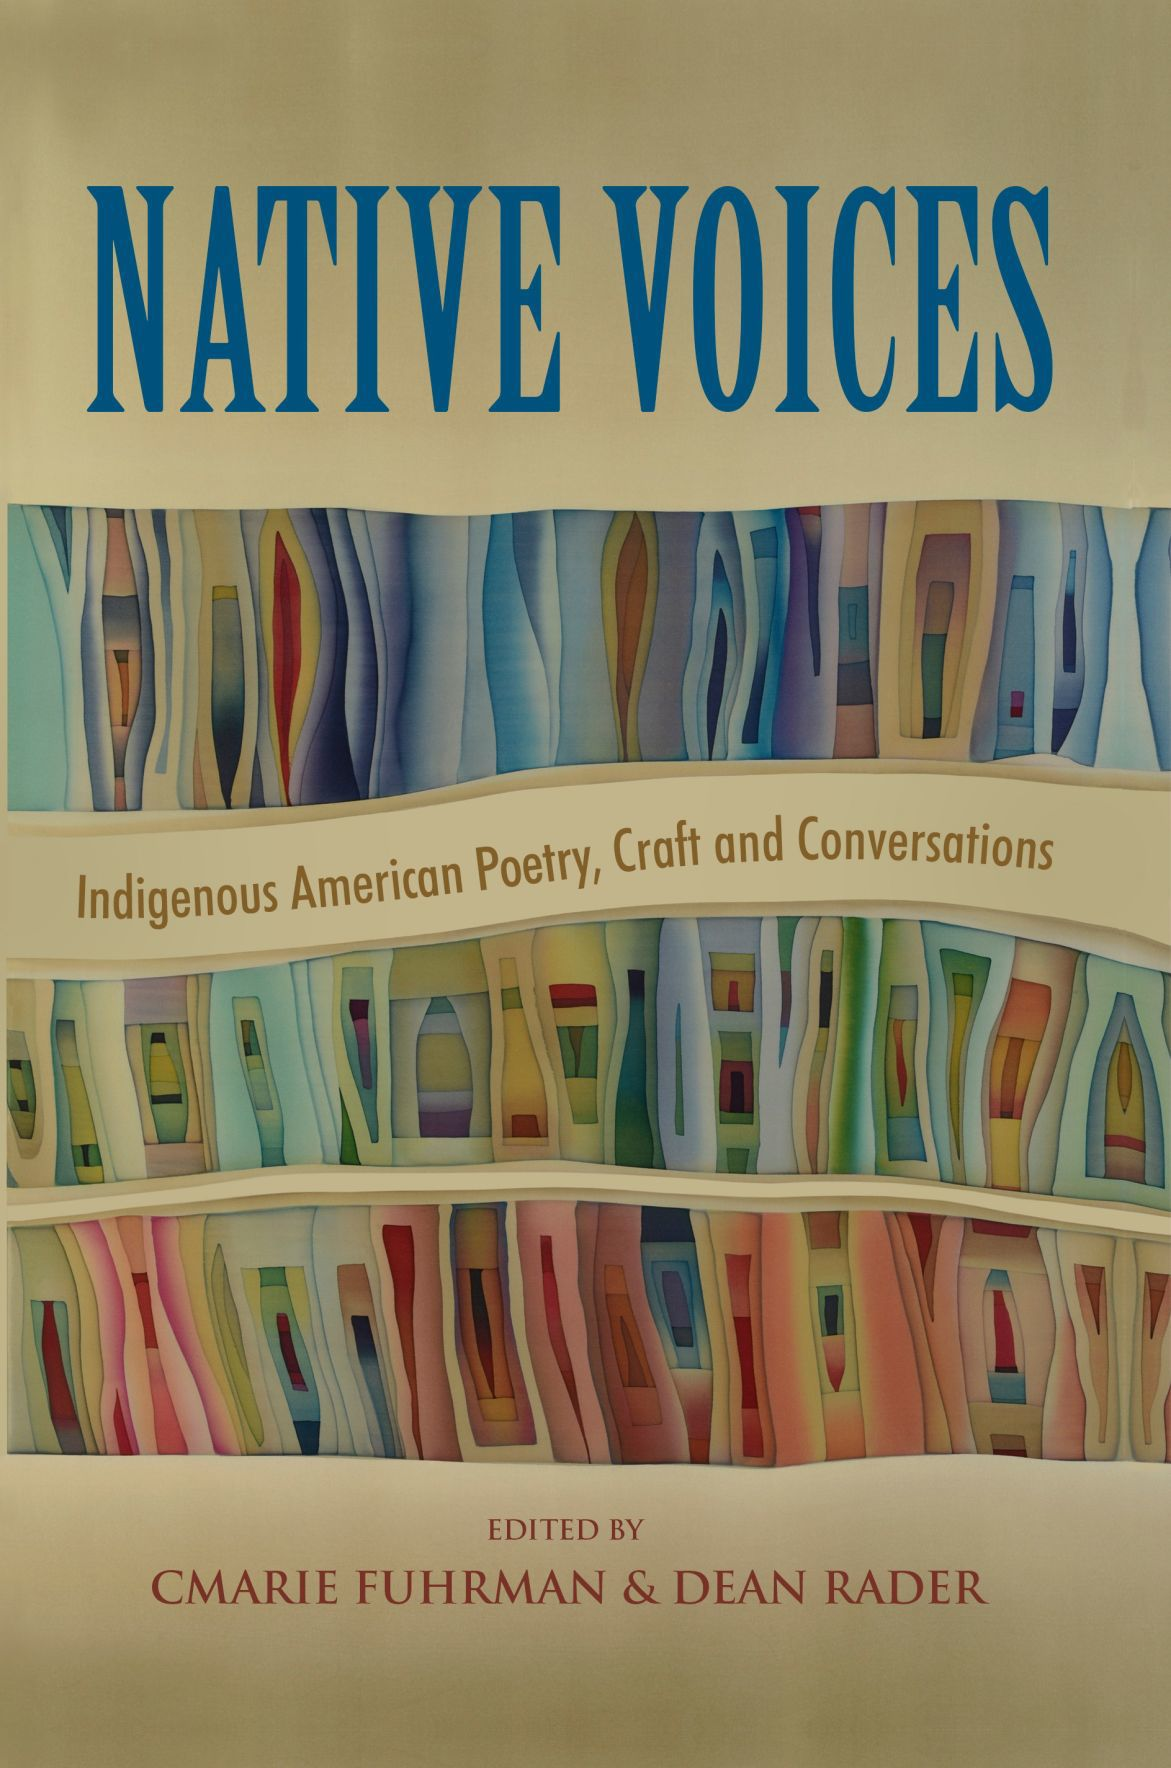 'Native Voices: Indigenous American Poetry, Craft and Conversations'